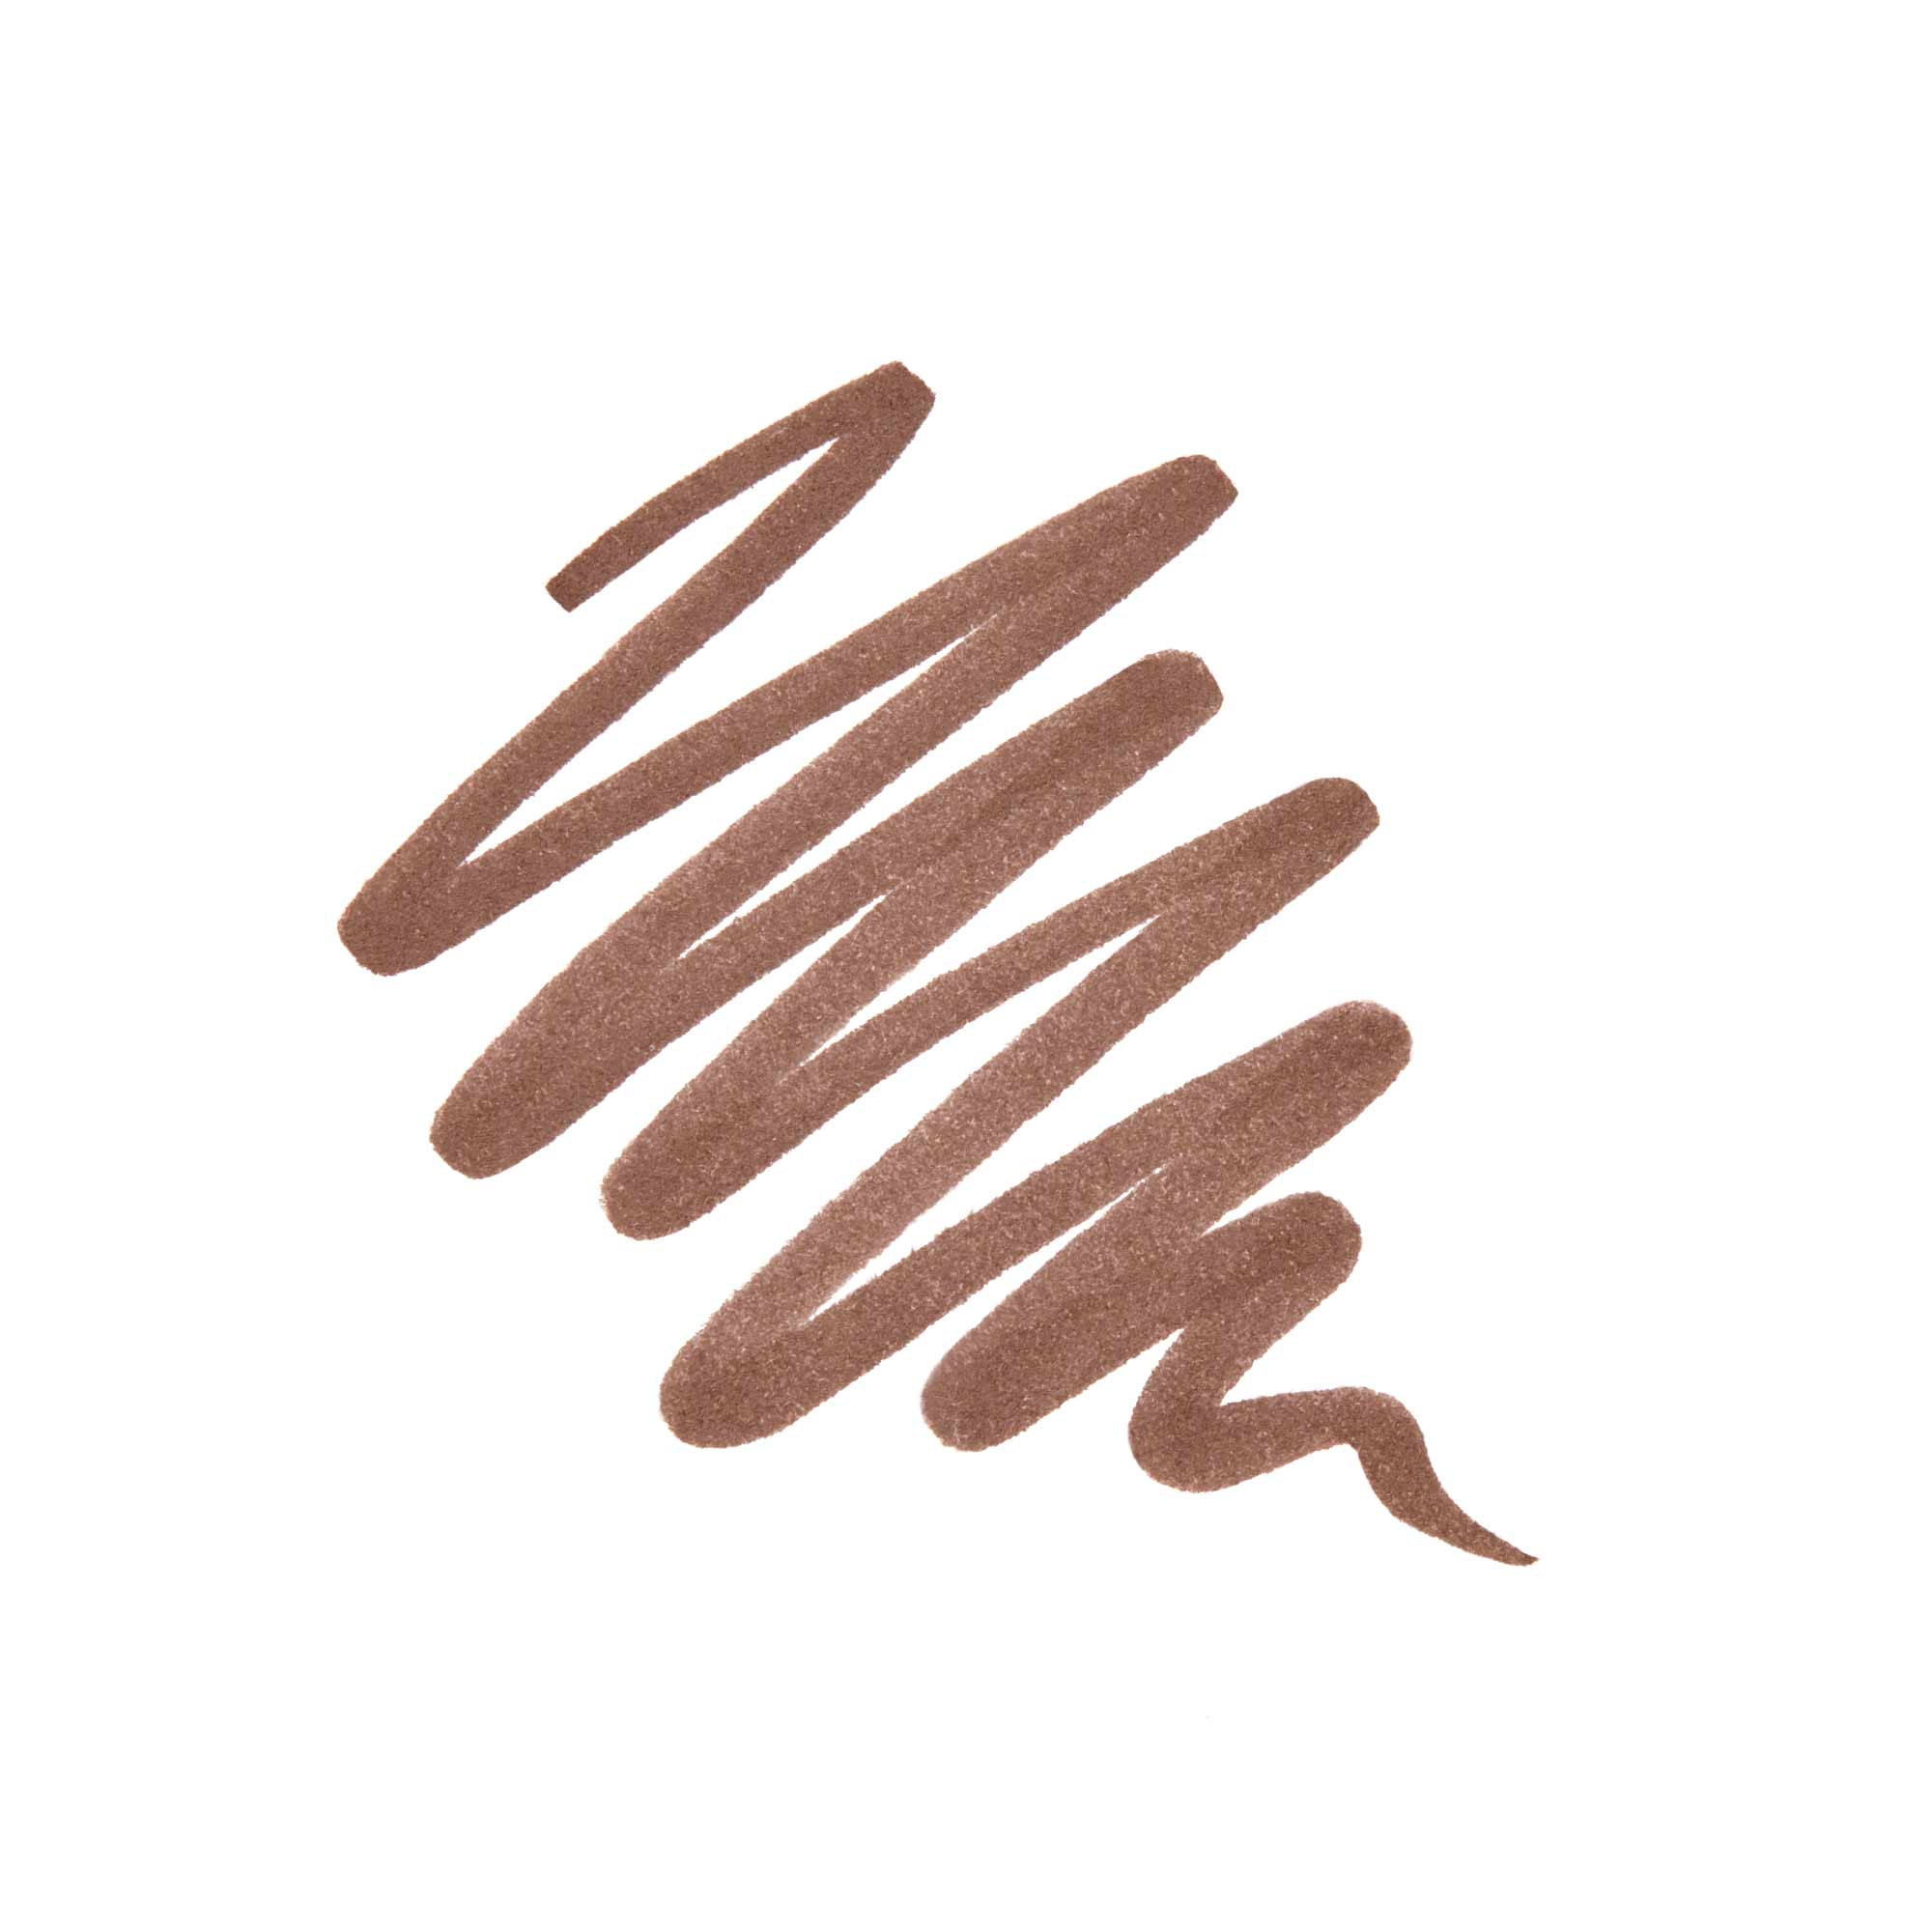 Brow Pen - Chocolate